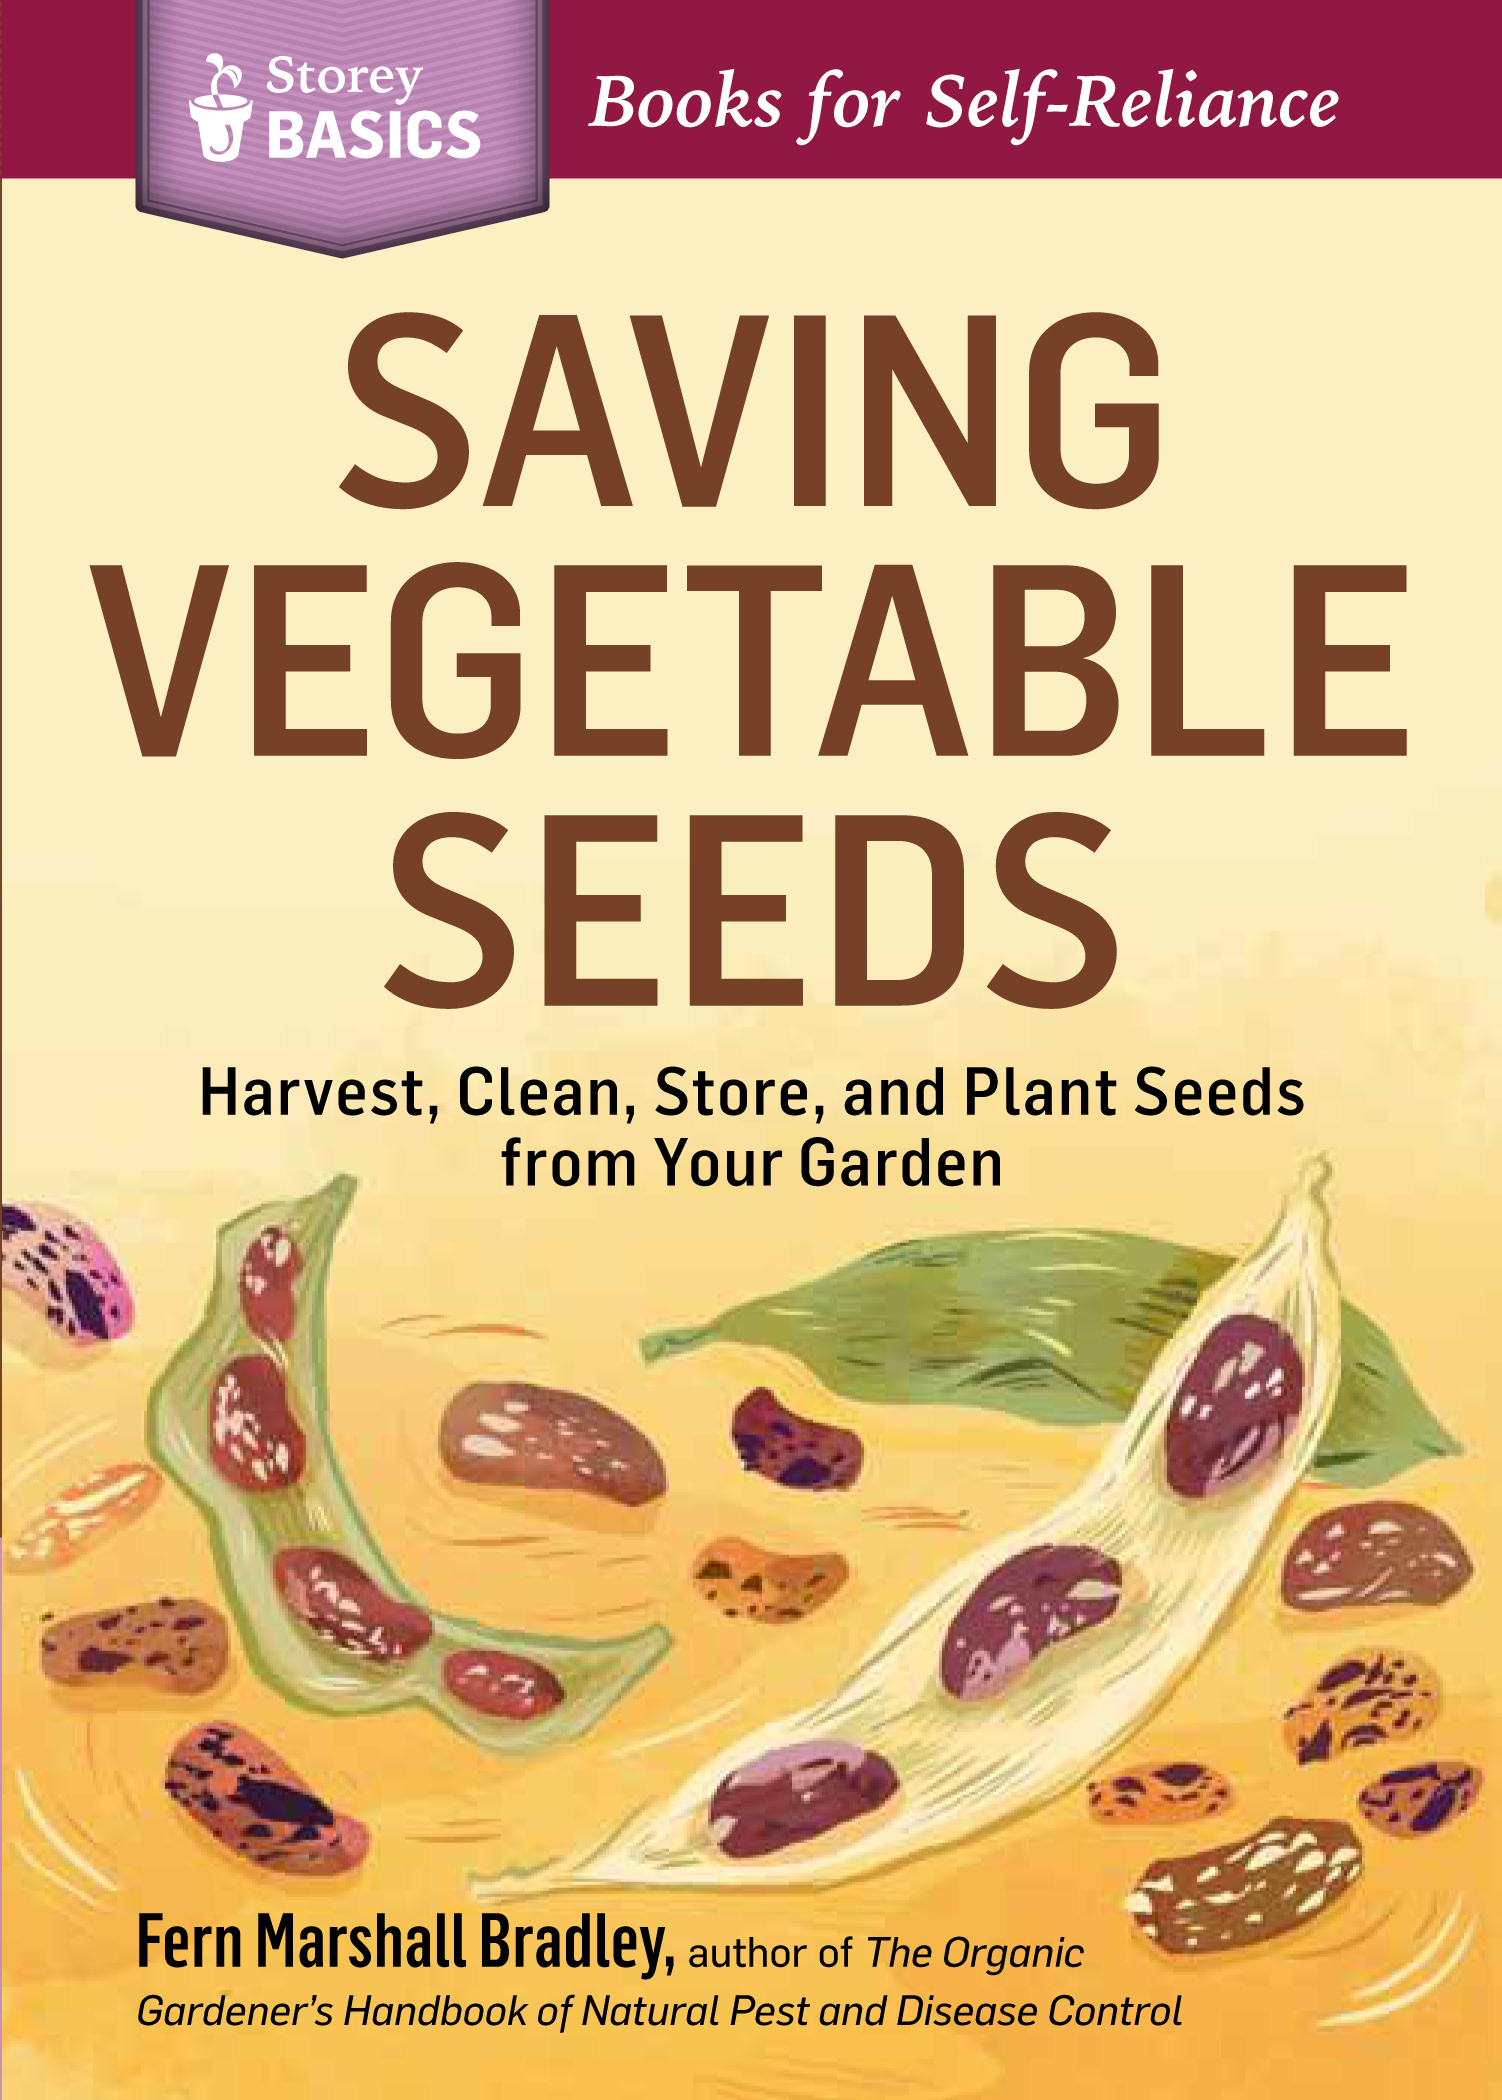 Saving Vegetable Seeds Harvest, Clean, Store, and Plant Seeds from Your Garden. A Storey BASICS® Title - Fern Marshall Bradley